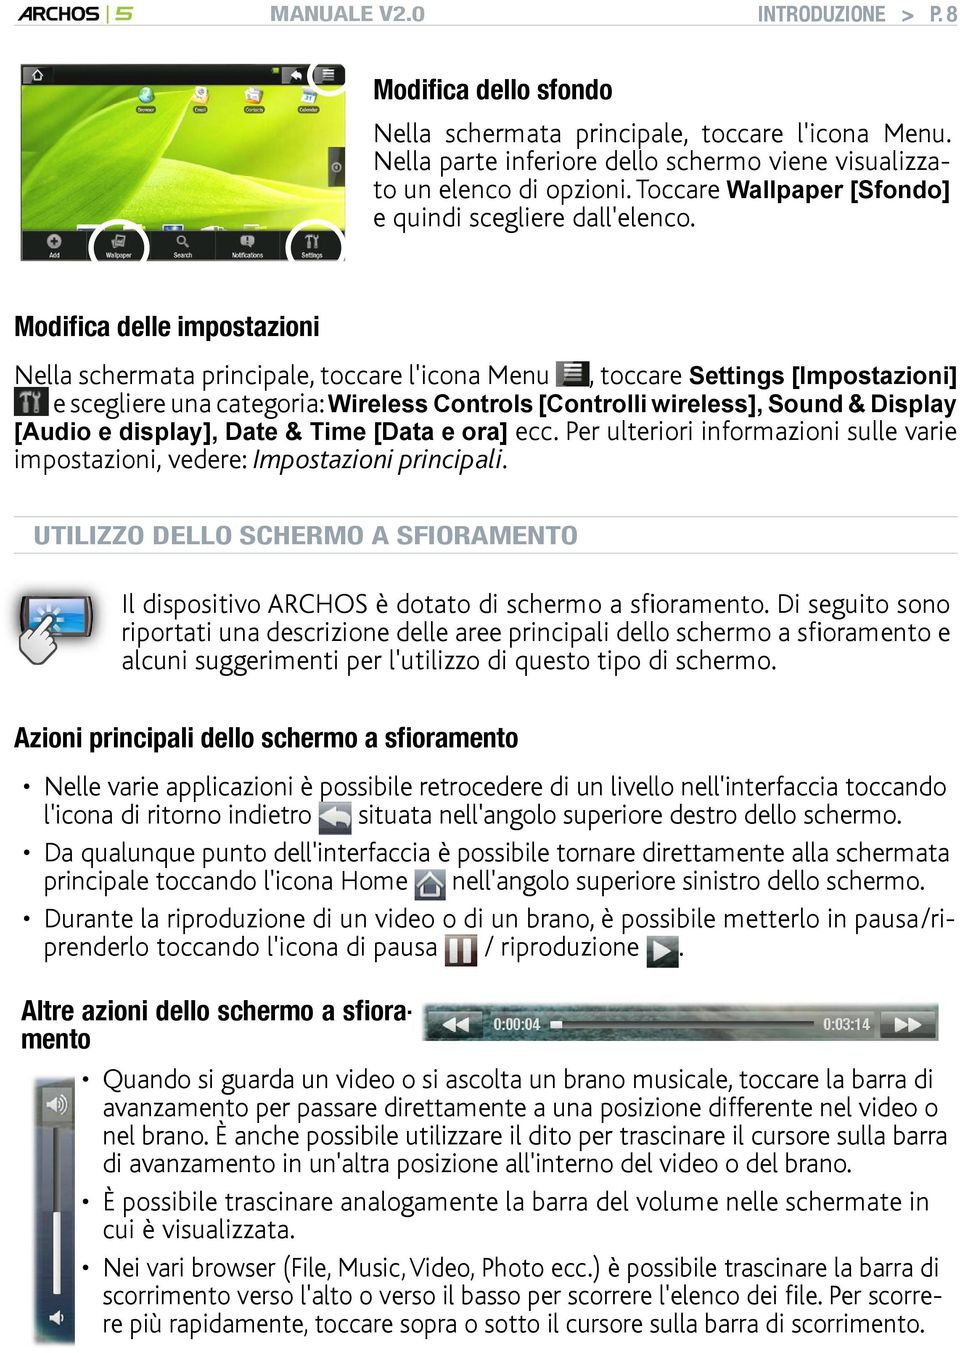 Modifica delle impostazioni Nella schermata principale, toccare l'icona Menu, toccare Settings [Impostazioni] e scegliere una categoria: Wireless Controls [Controlli wireless], Sound & Display [Audio